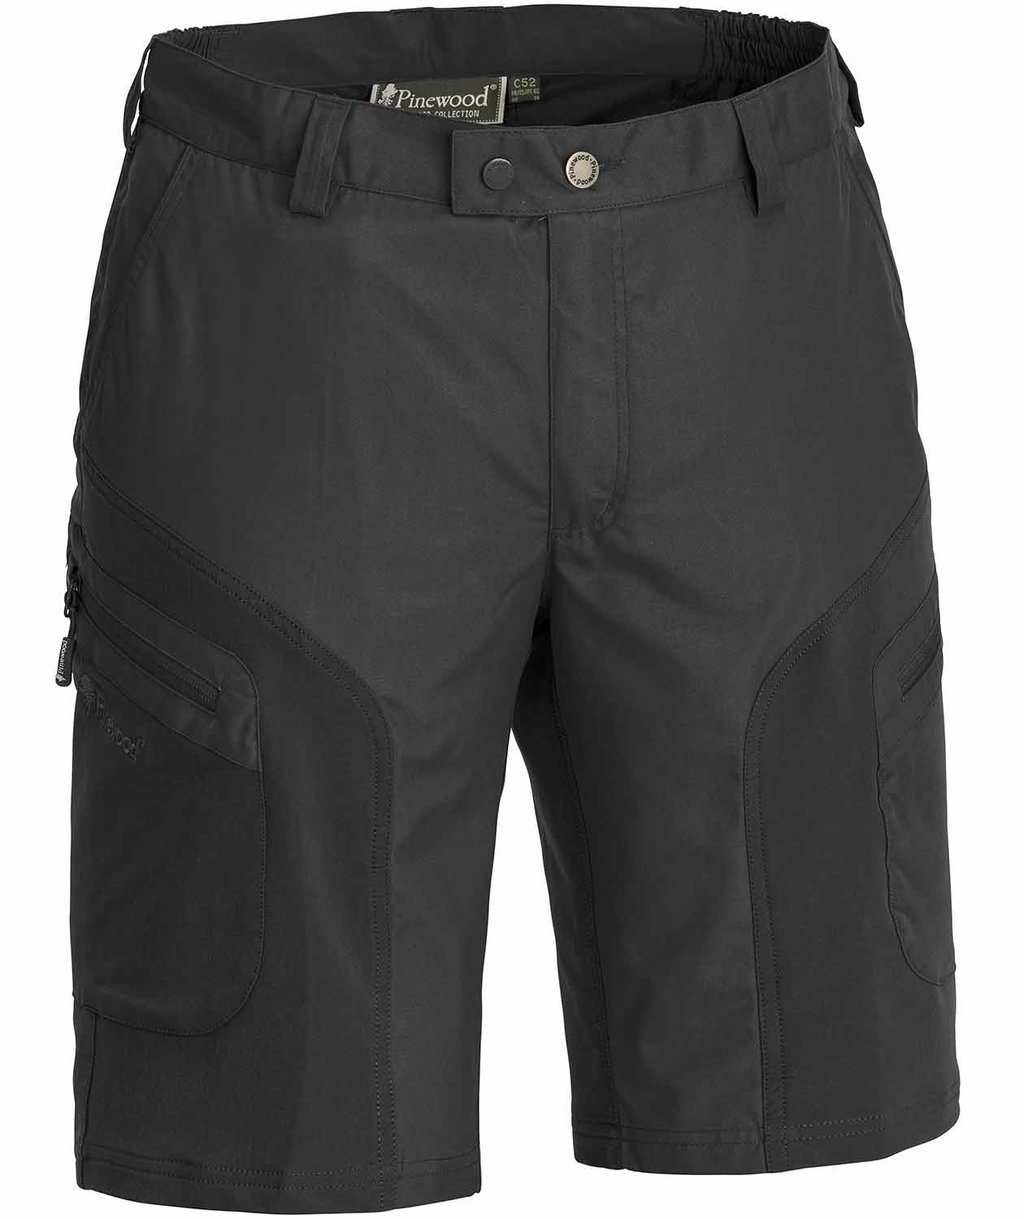 Pinewood Wildmark stretch shorts, Sort